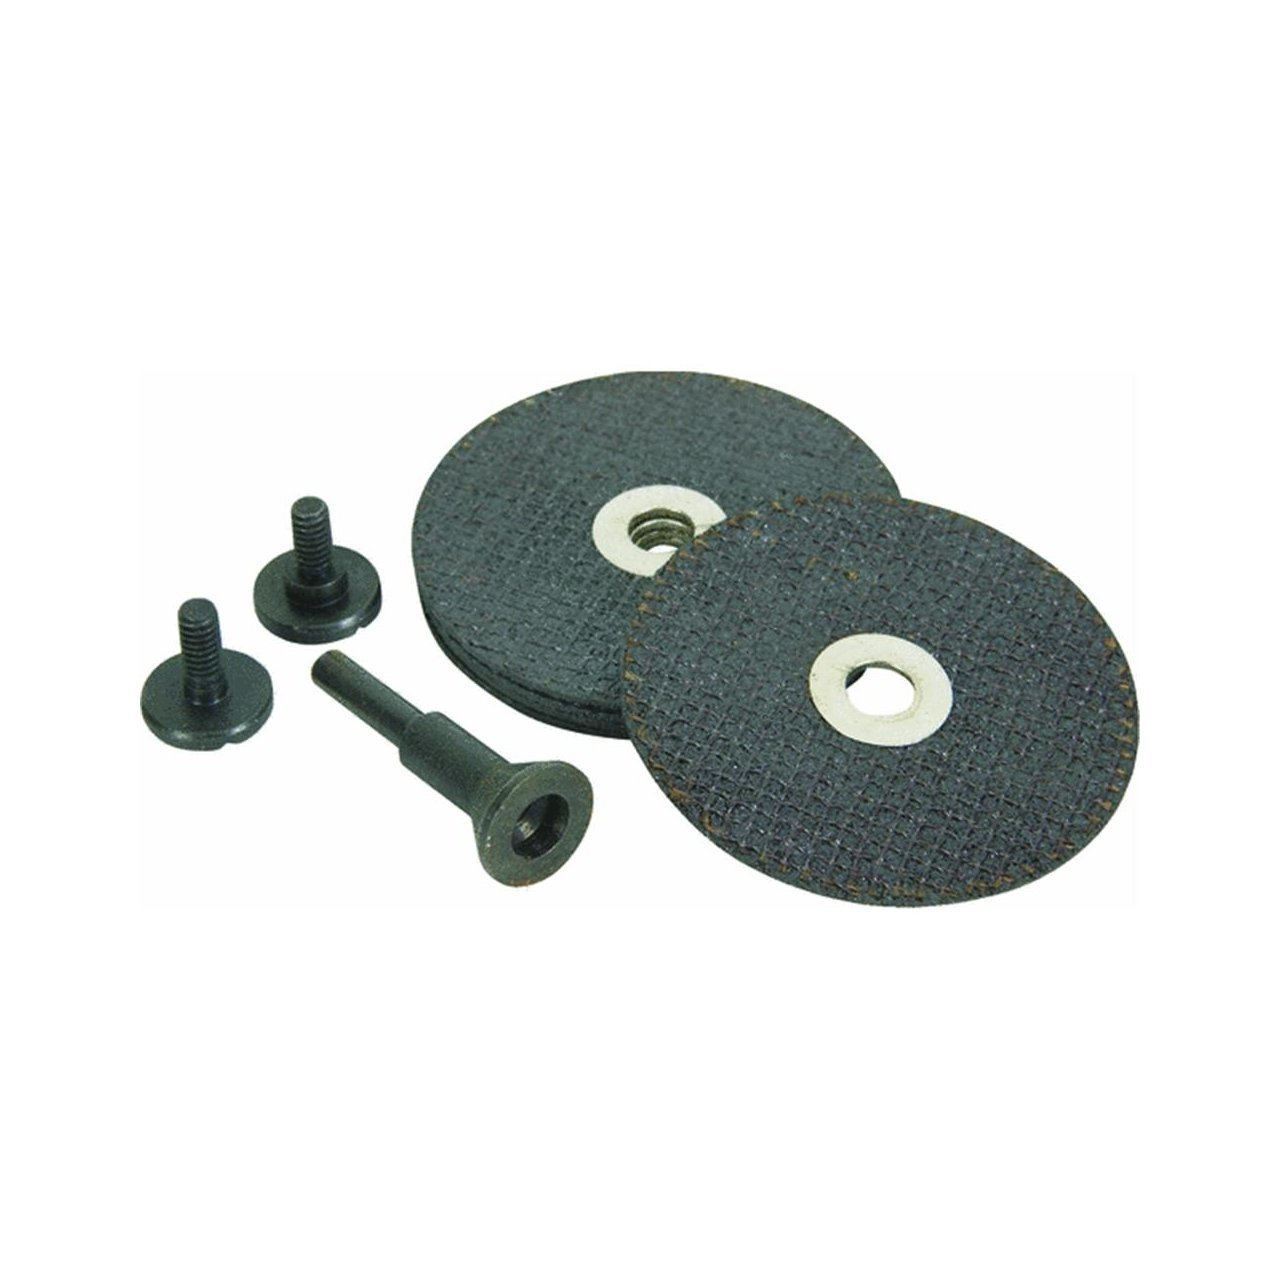 Weiler 36543 Abrasive Wheel Kit